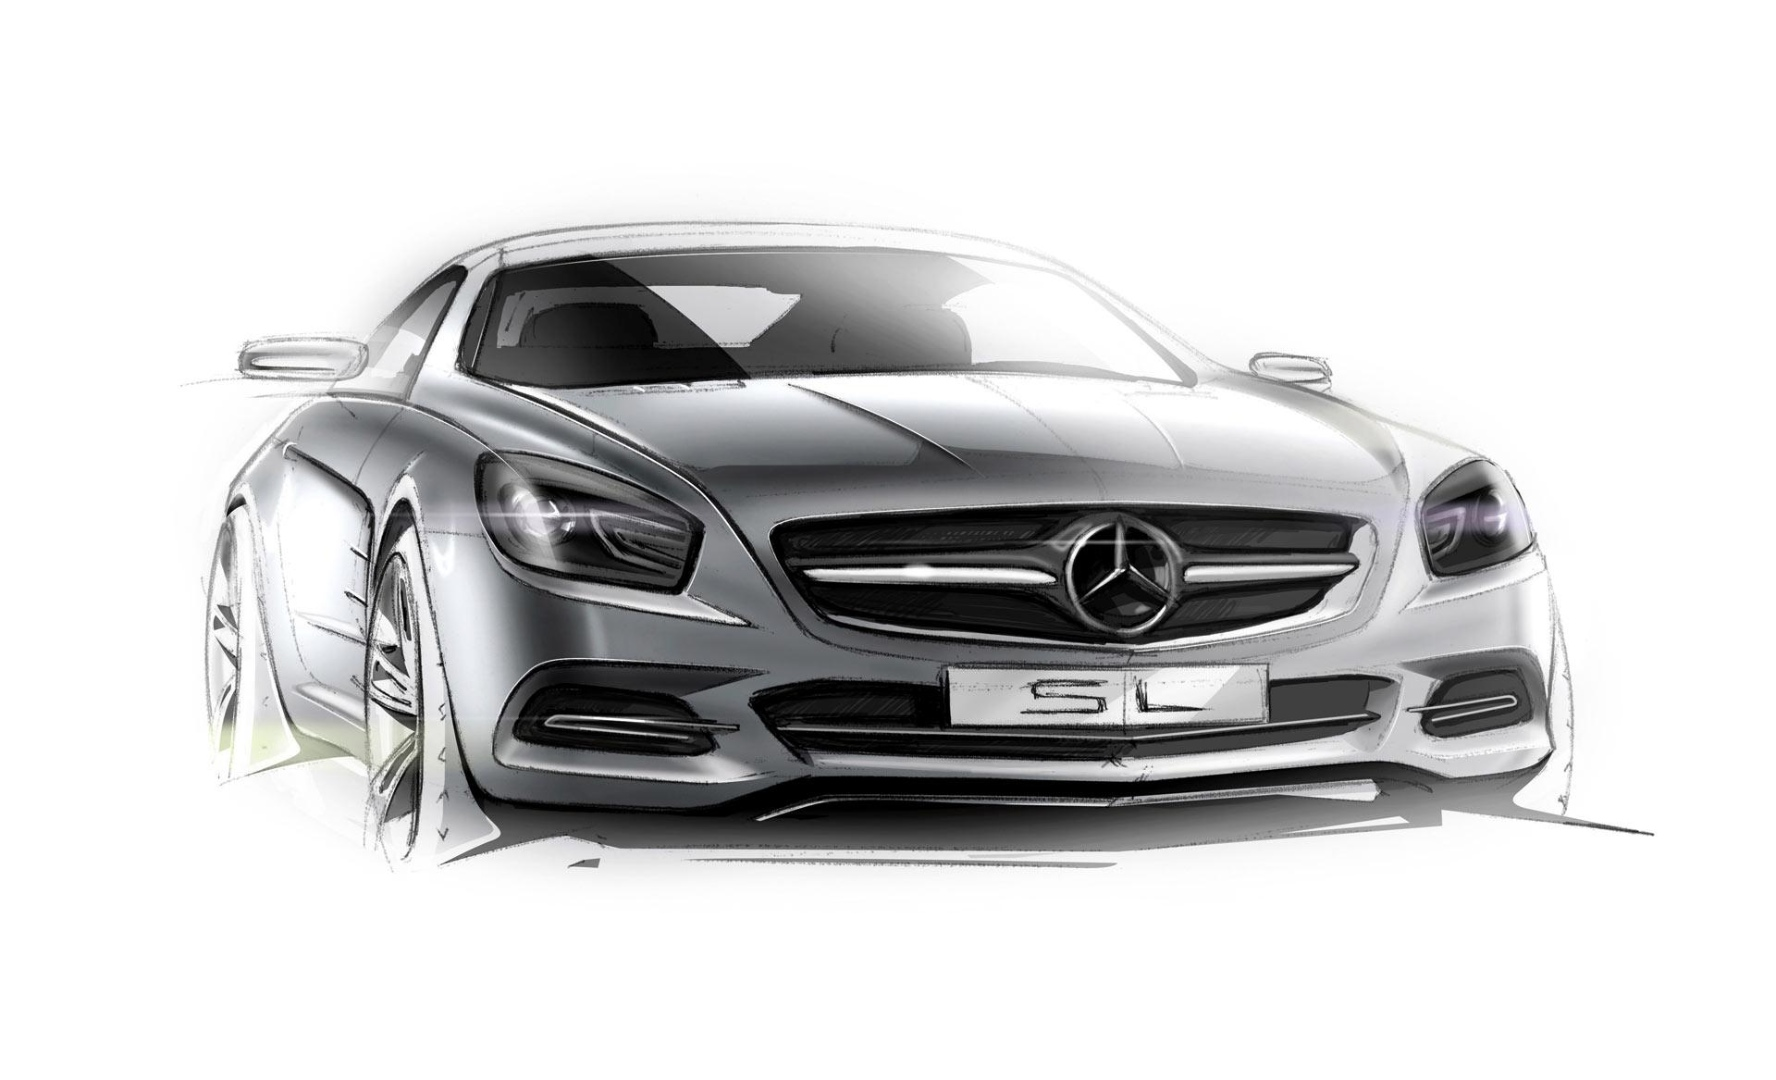 Mercedes benz sl roadster r231 to receive drastic facelift for 2015 mercedes benz sl